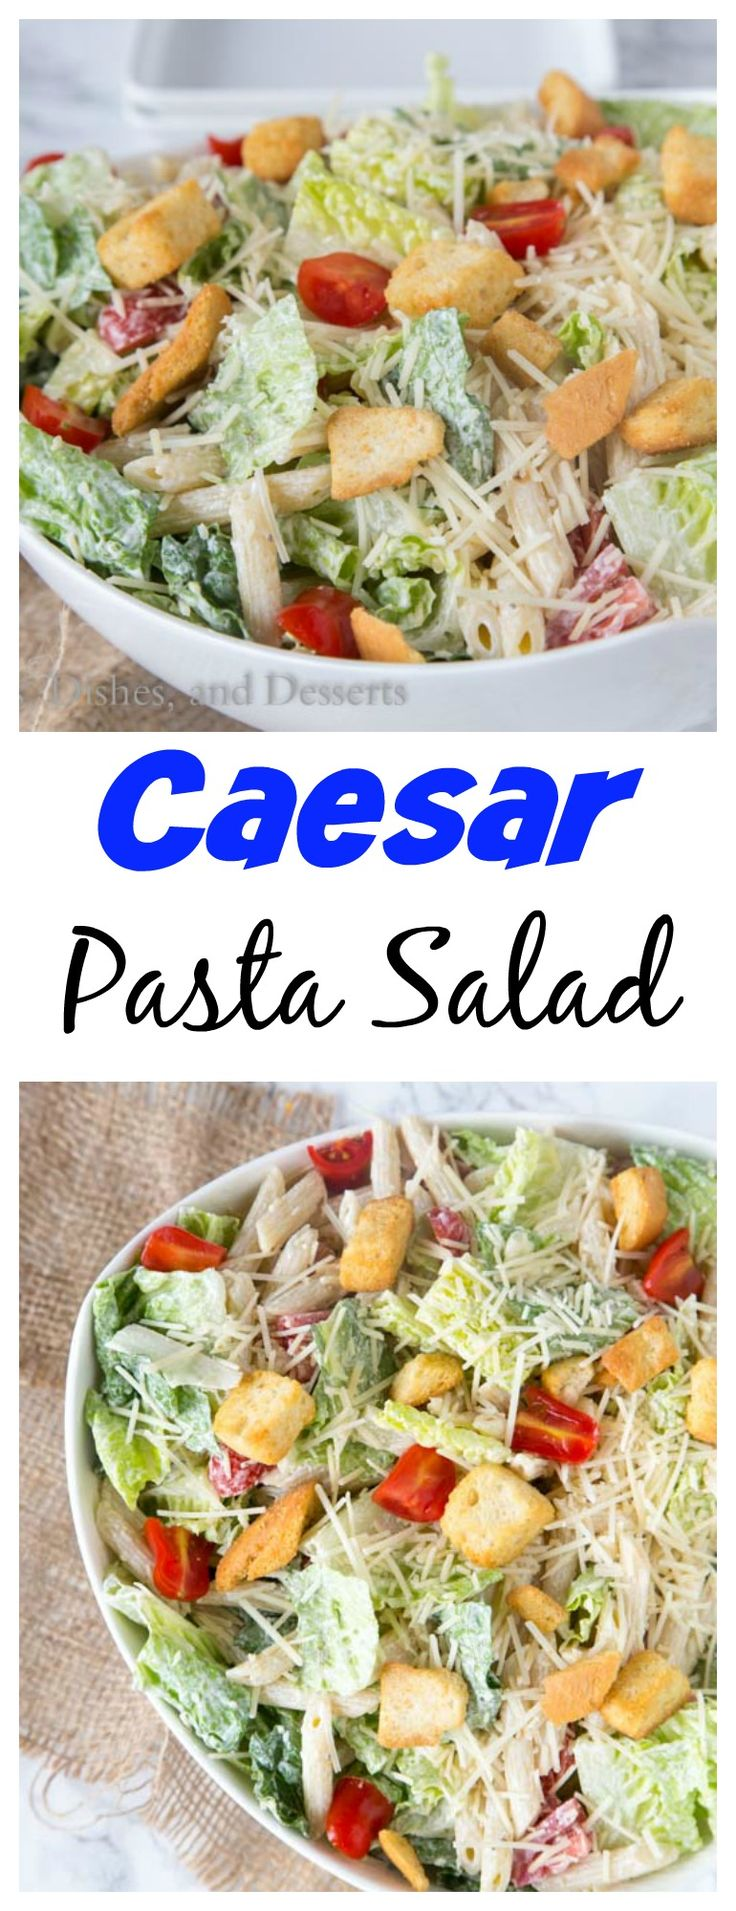 Caesar Pasta Salad – combine two favorites for one perfect summer side dish.  Caesar salad and pasta salad come together in an easy dish everyone will love!